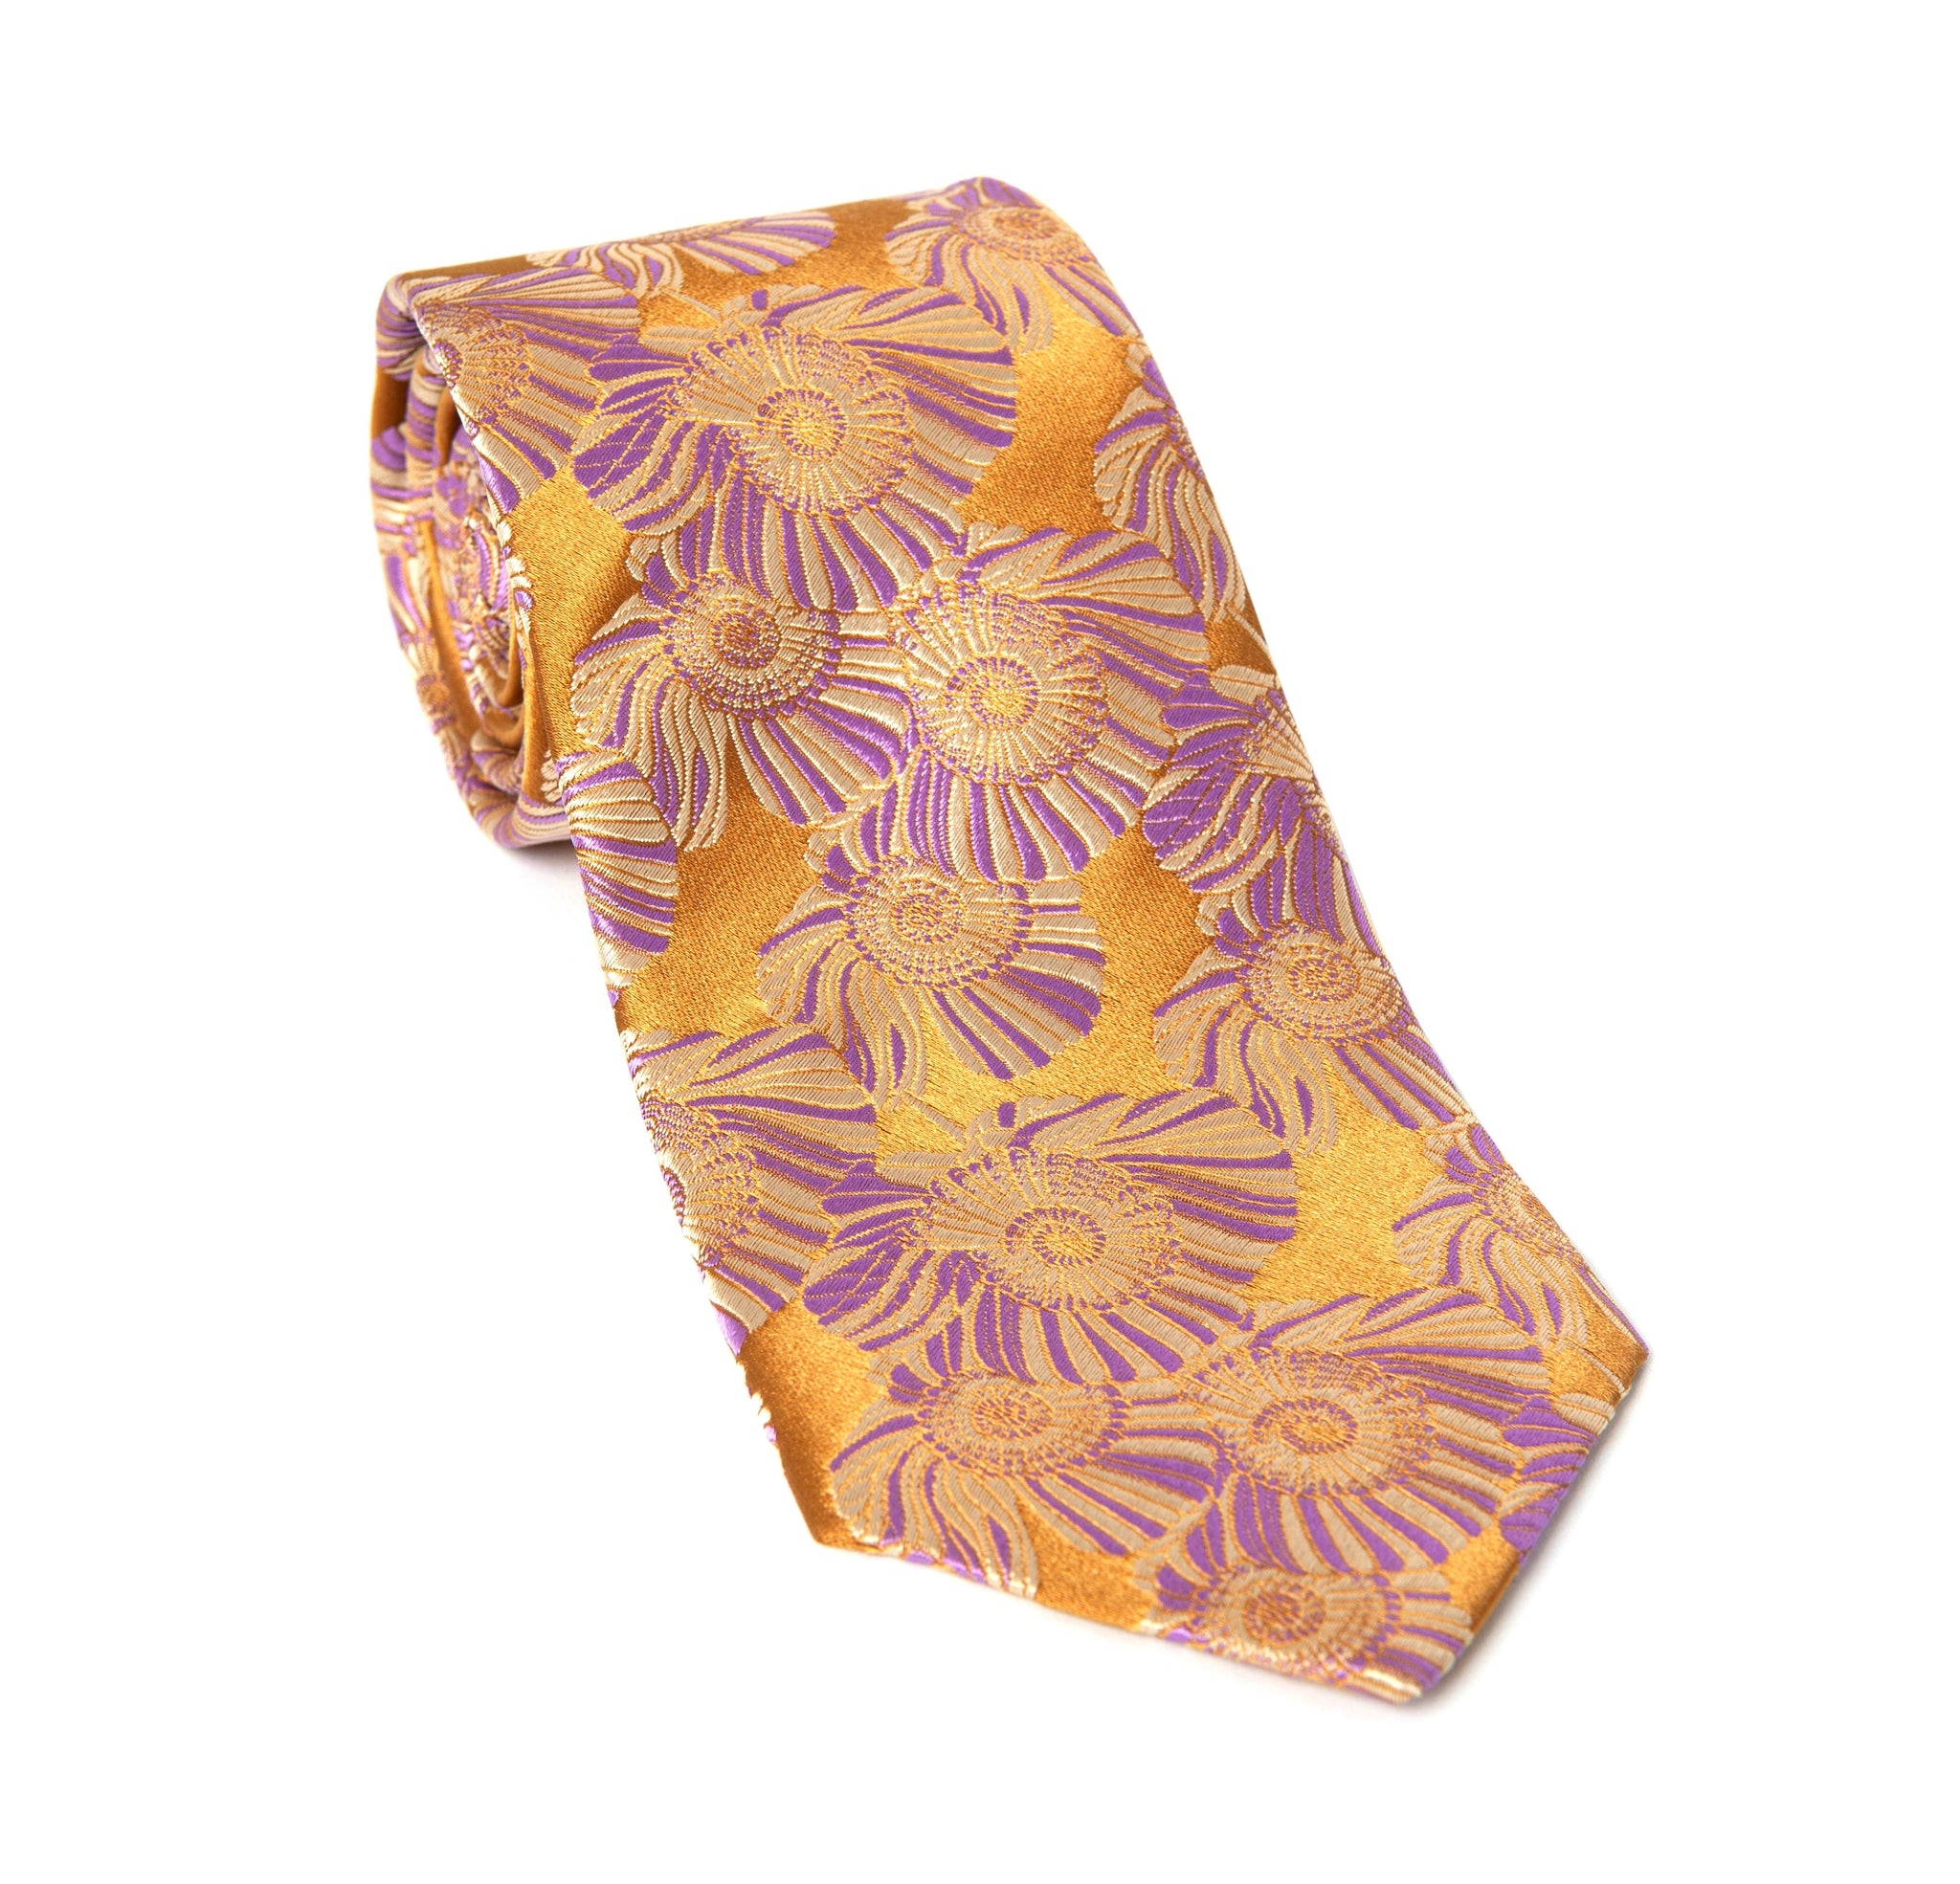 Regent Woven Silk Tie - Gold and Purple Flower